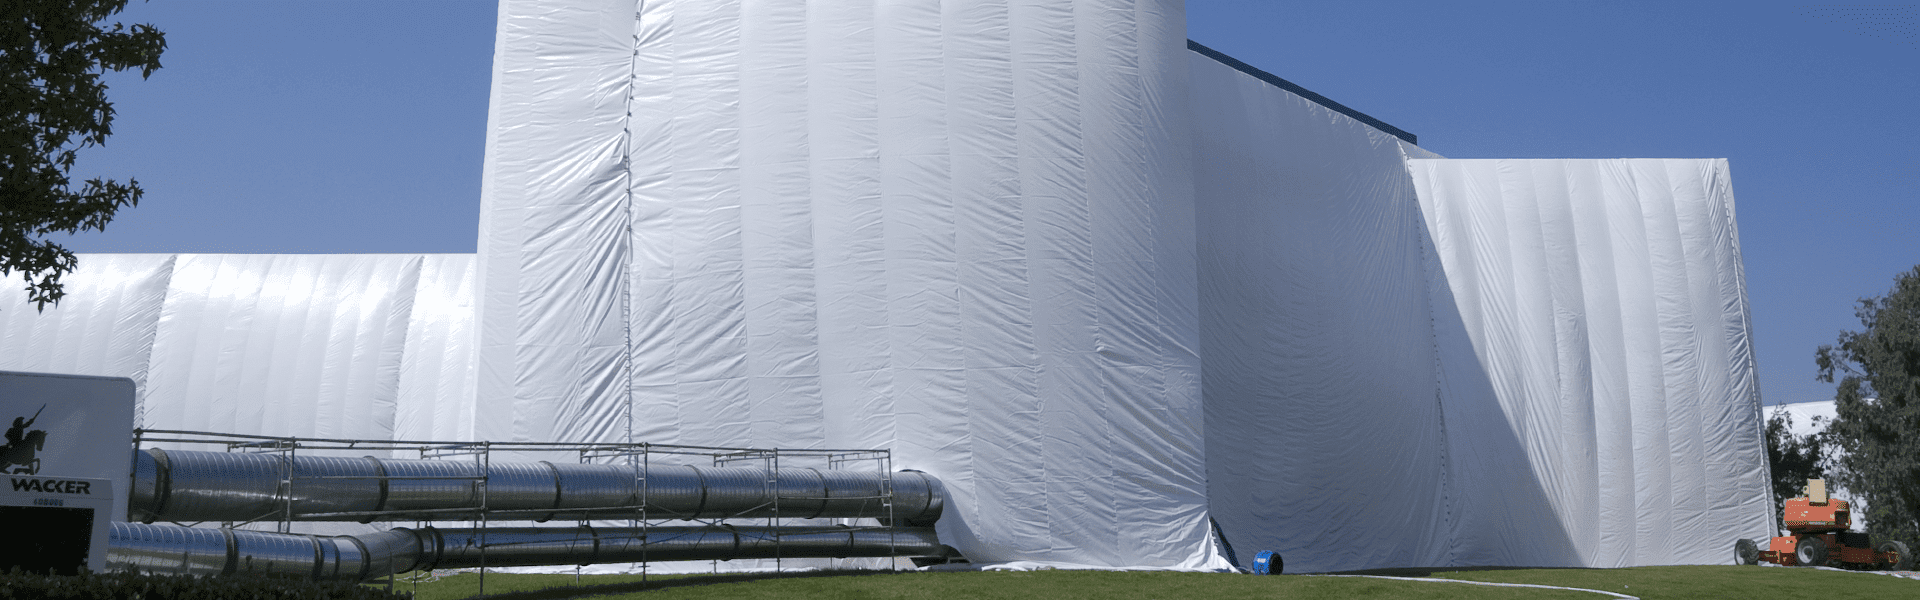 commercial facility tented for fumigation service